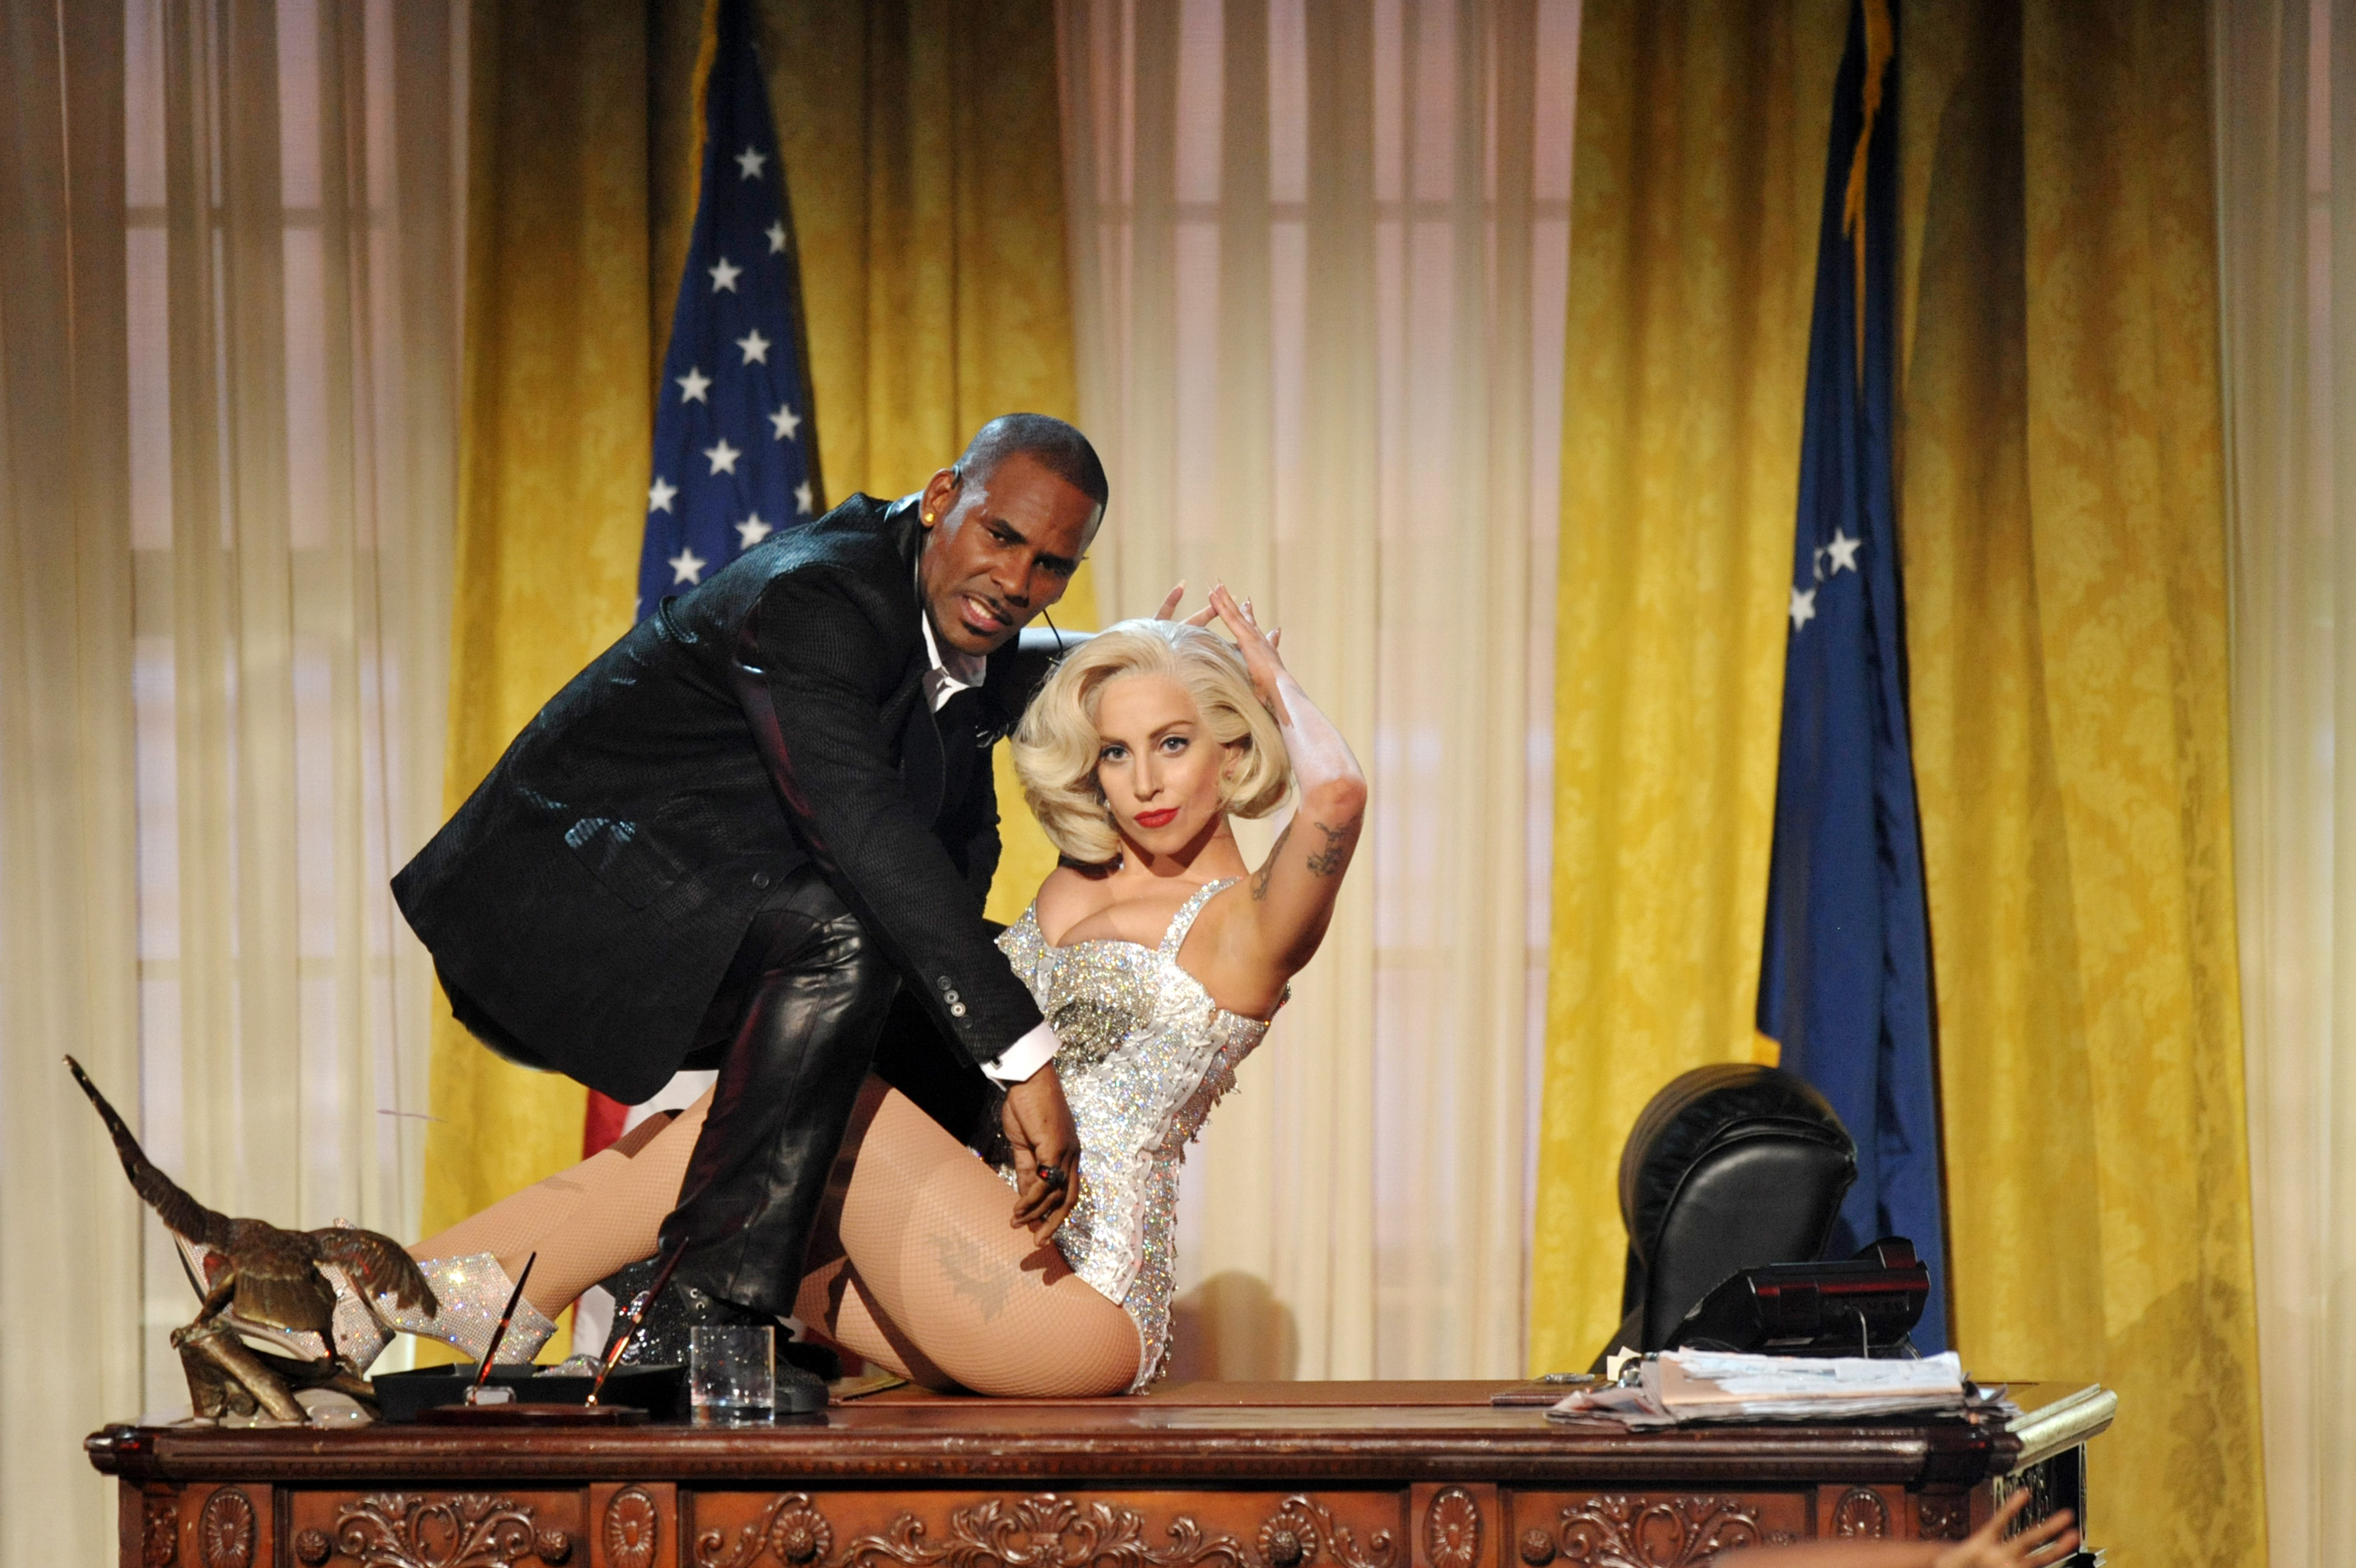 R. Kelly and Lady Gaga perform at the American Music Awards in 2013.